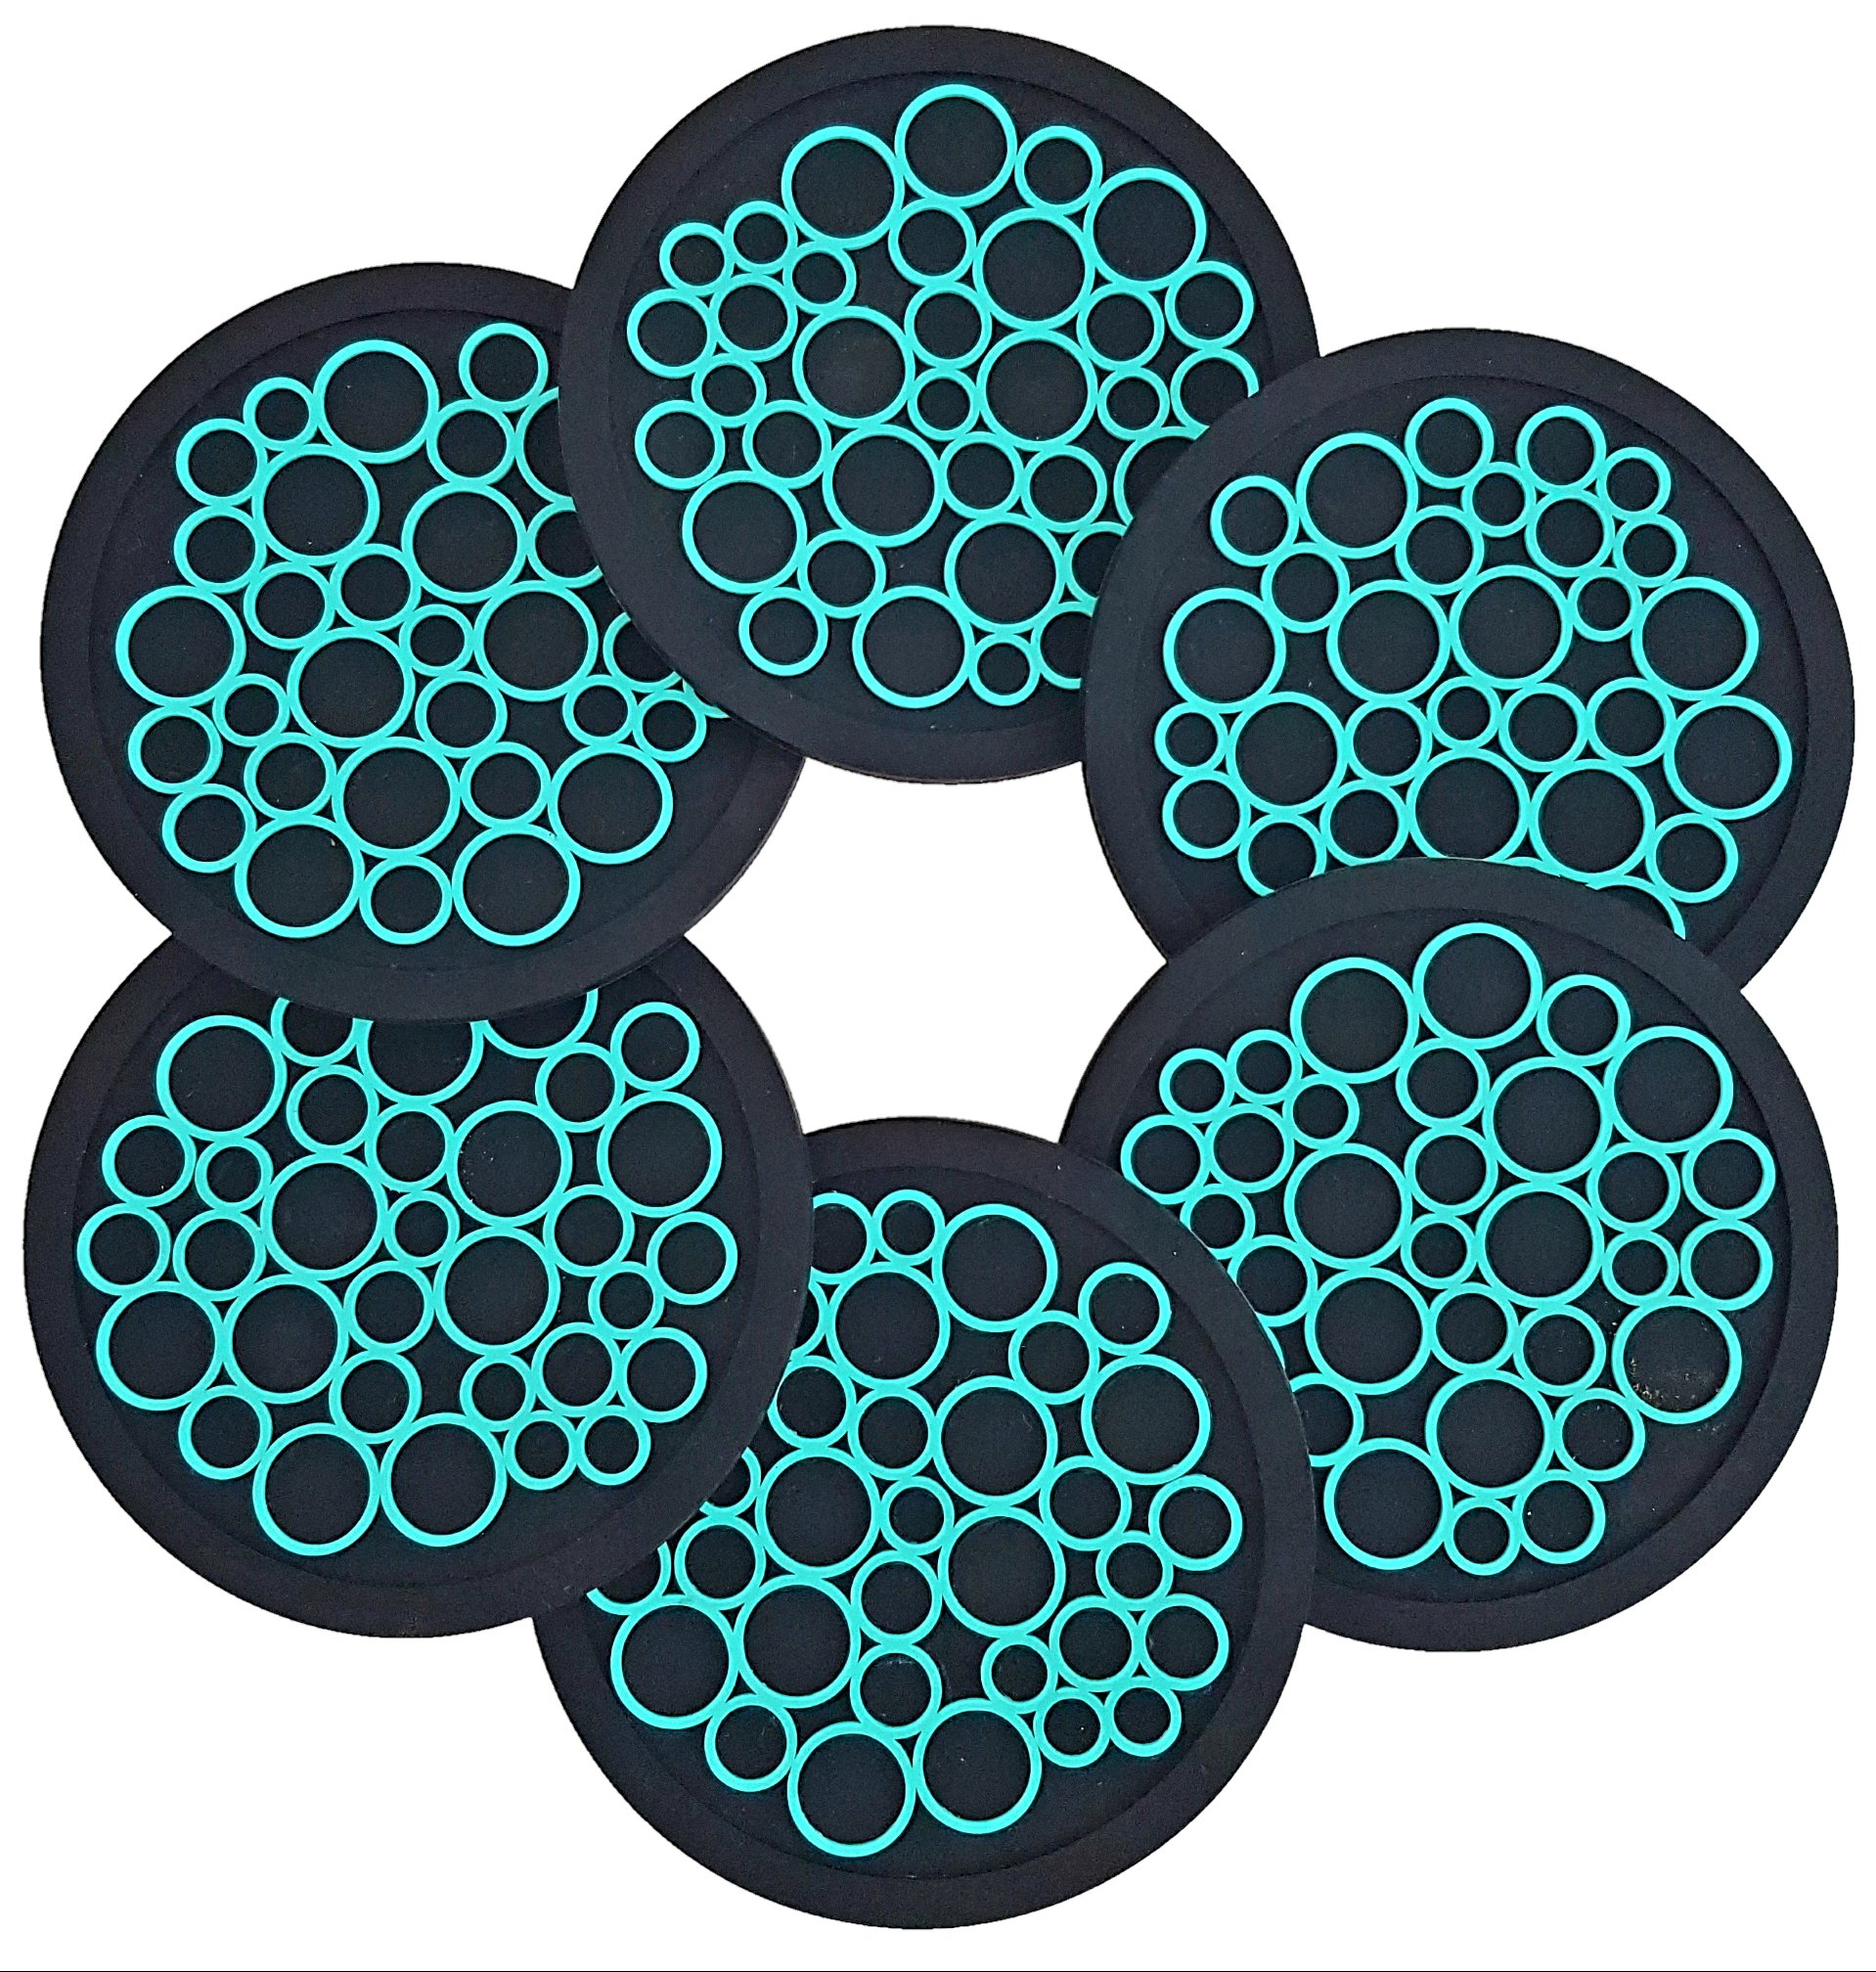 Unique Design Coasters, Set of 6 | Food Grade Silicone, Large Tough Grip, No Slip | Perfect for Hot & Cold Drinks | Child Proof | Protects Furniture (Black & Teal)